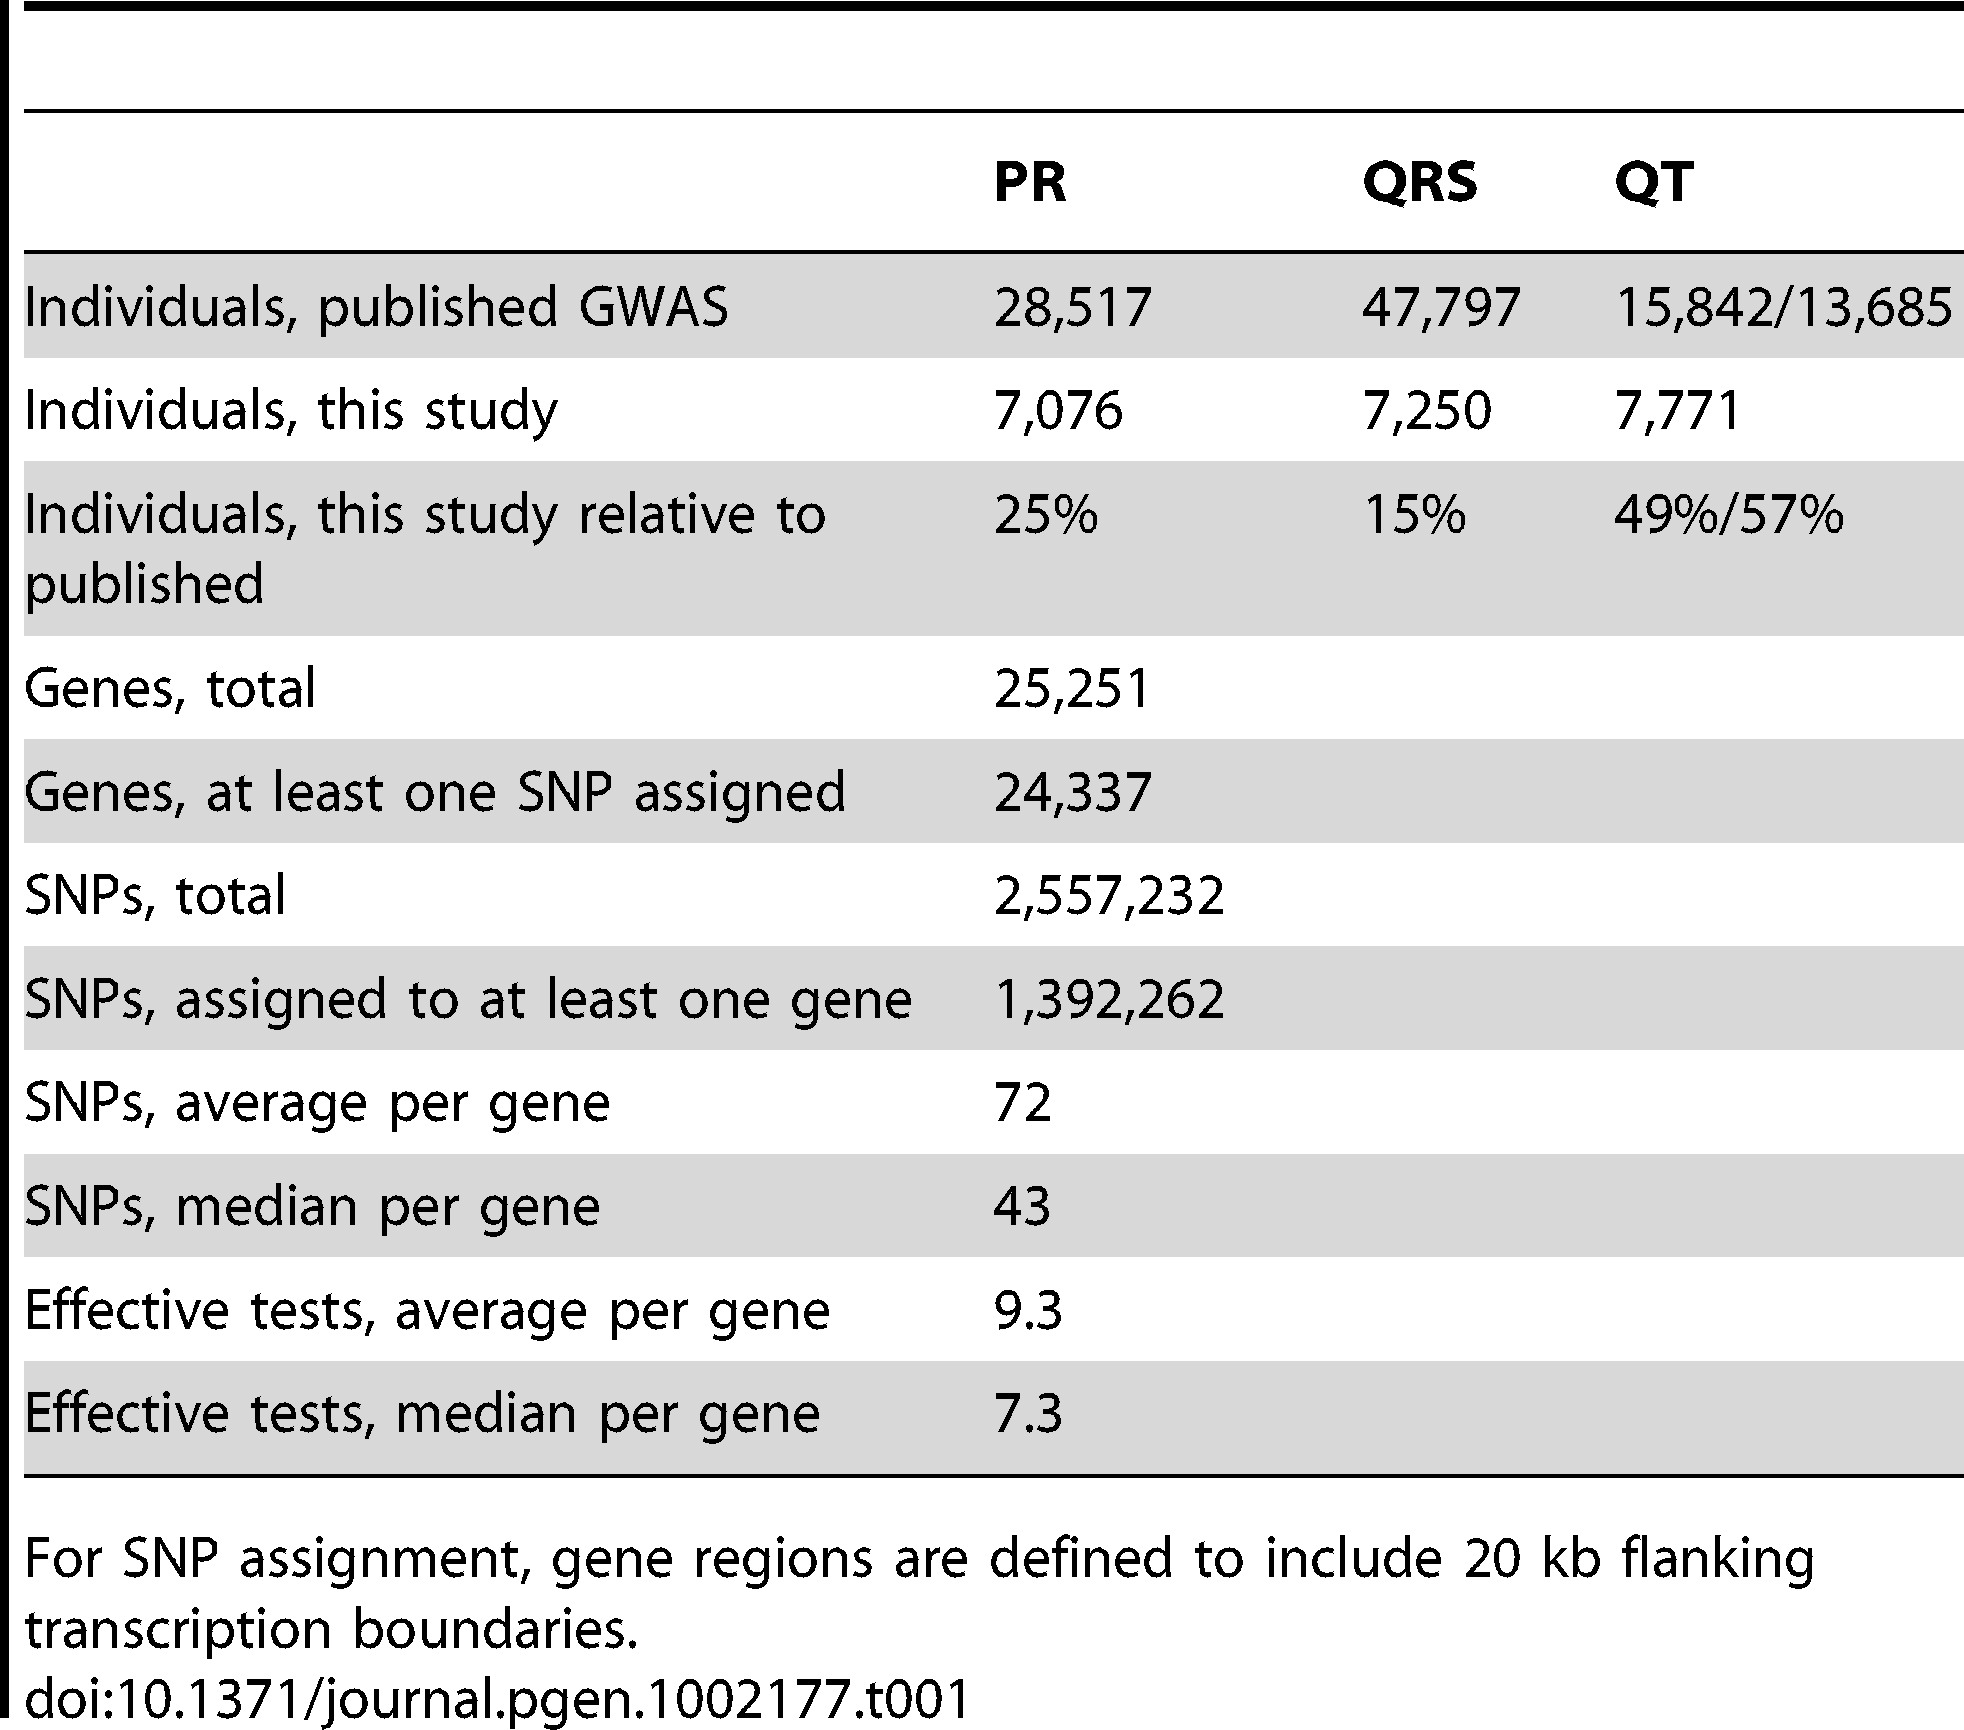 Populations, genes, and SNPs used in this study.